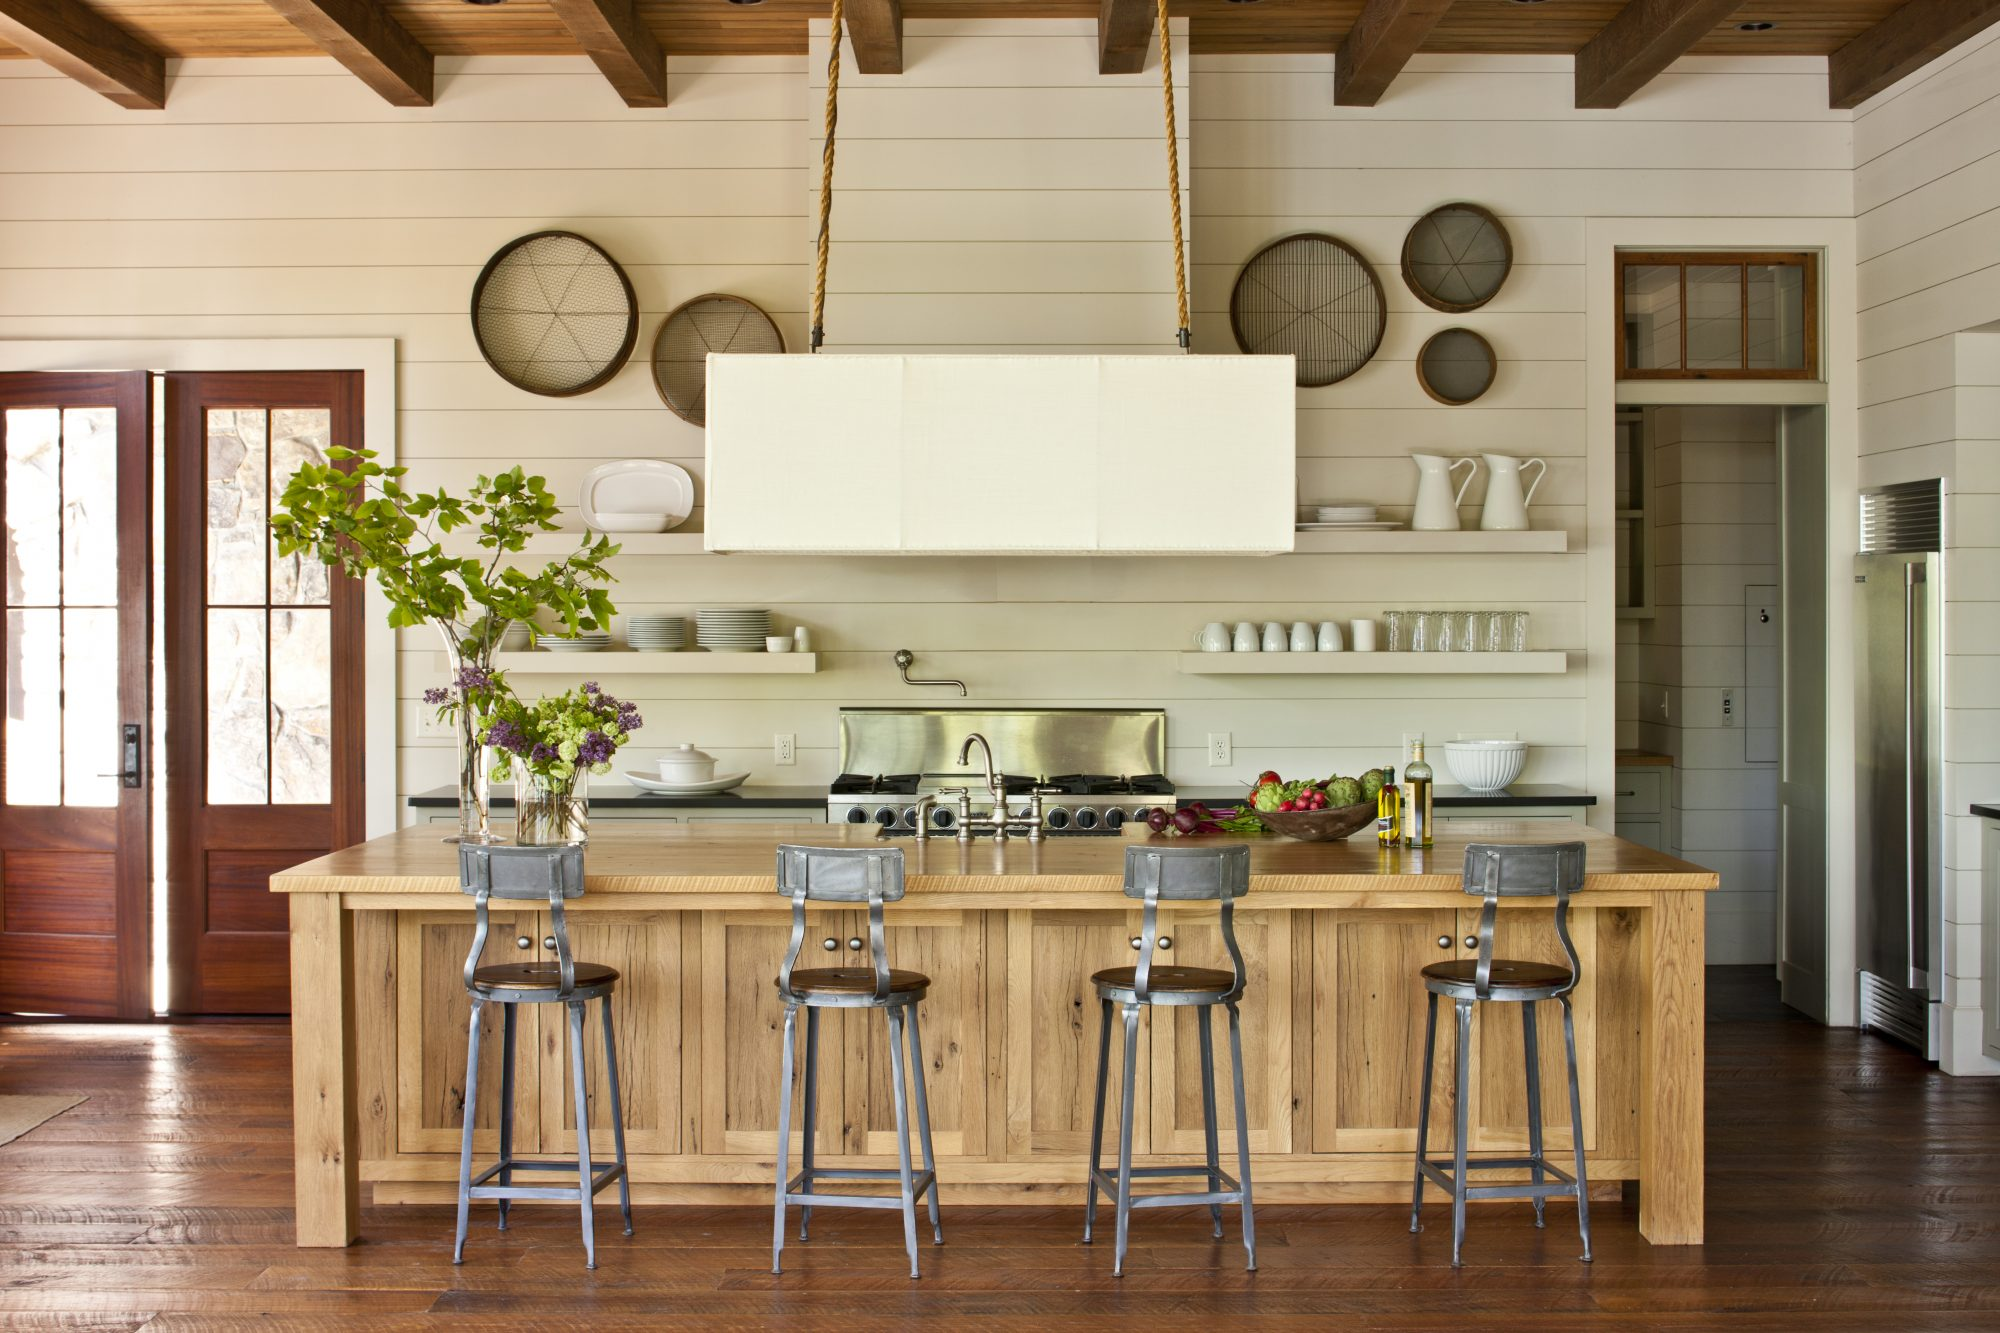 Creative Seating in the Kitchen